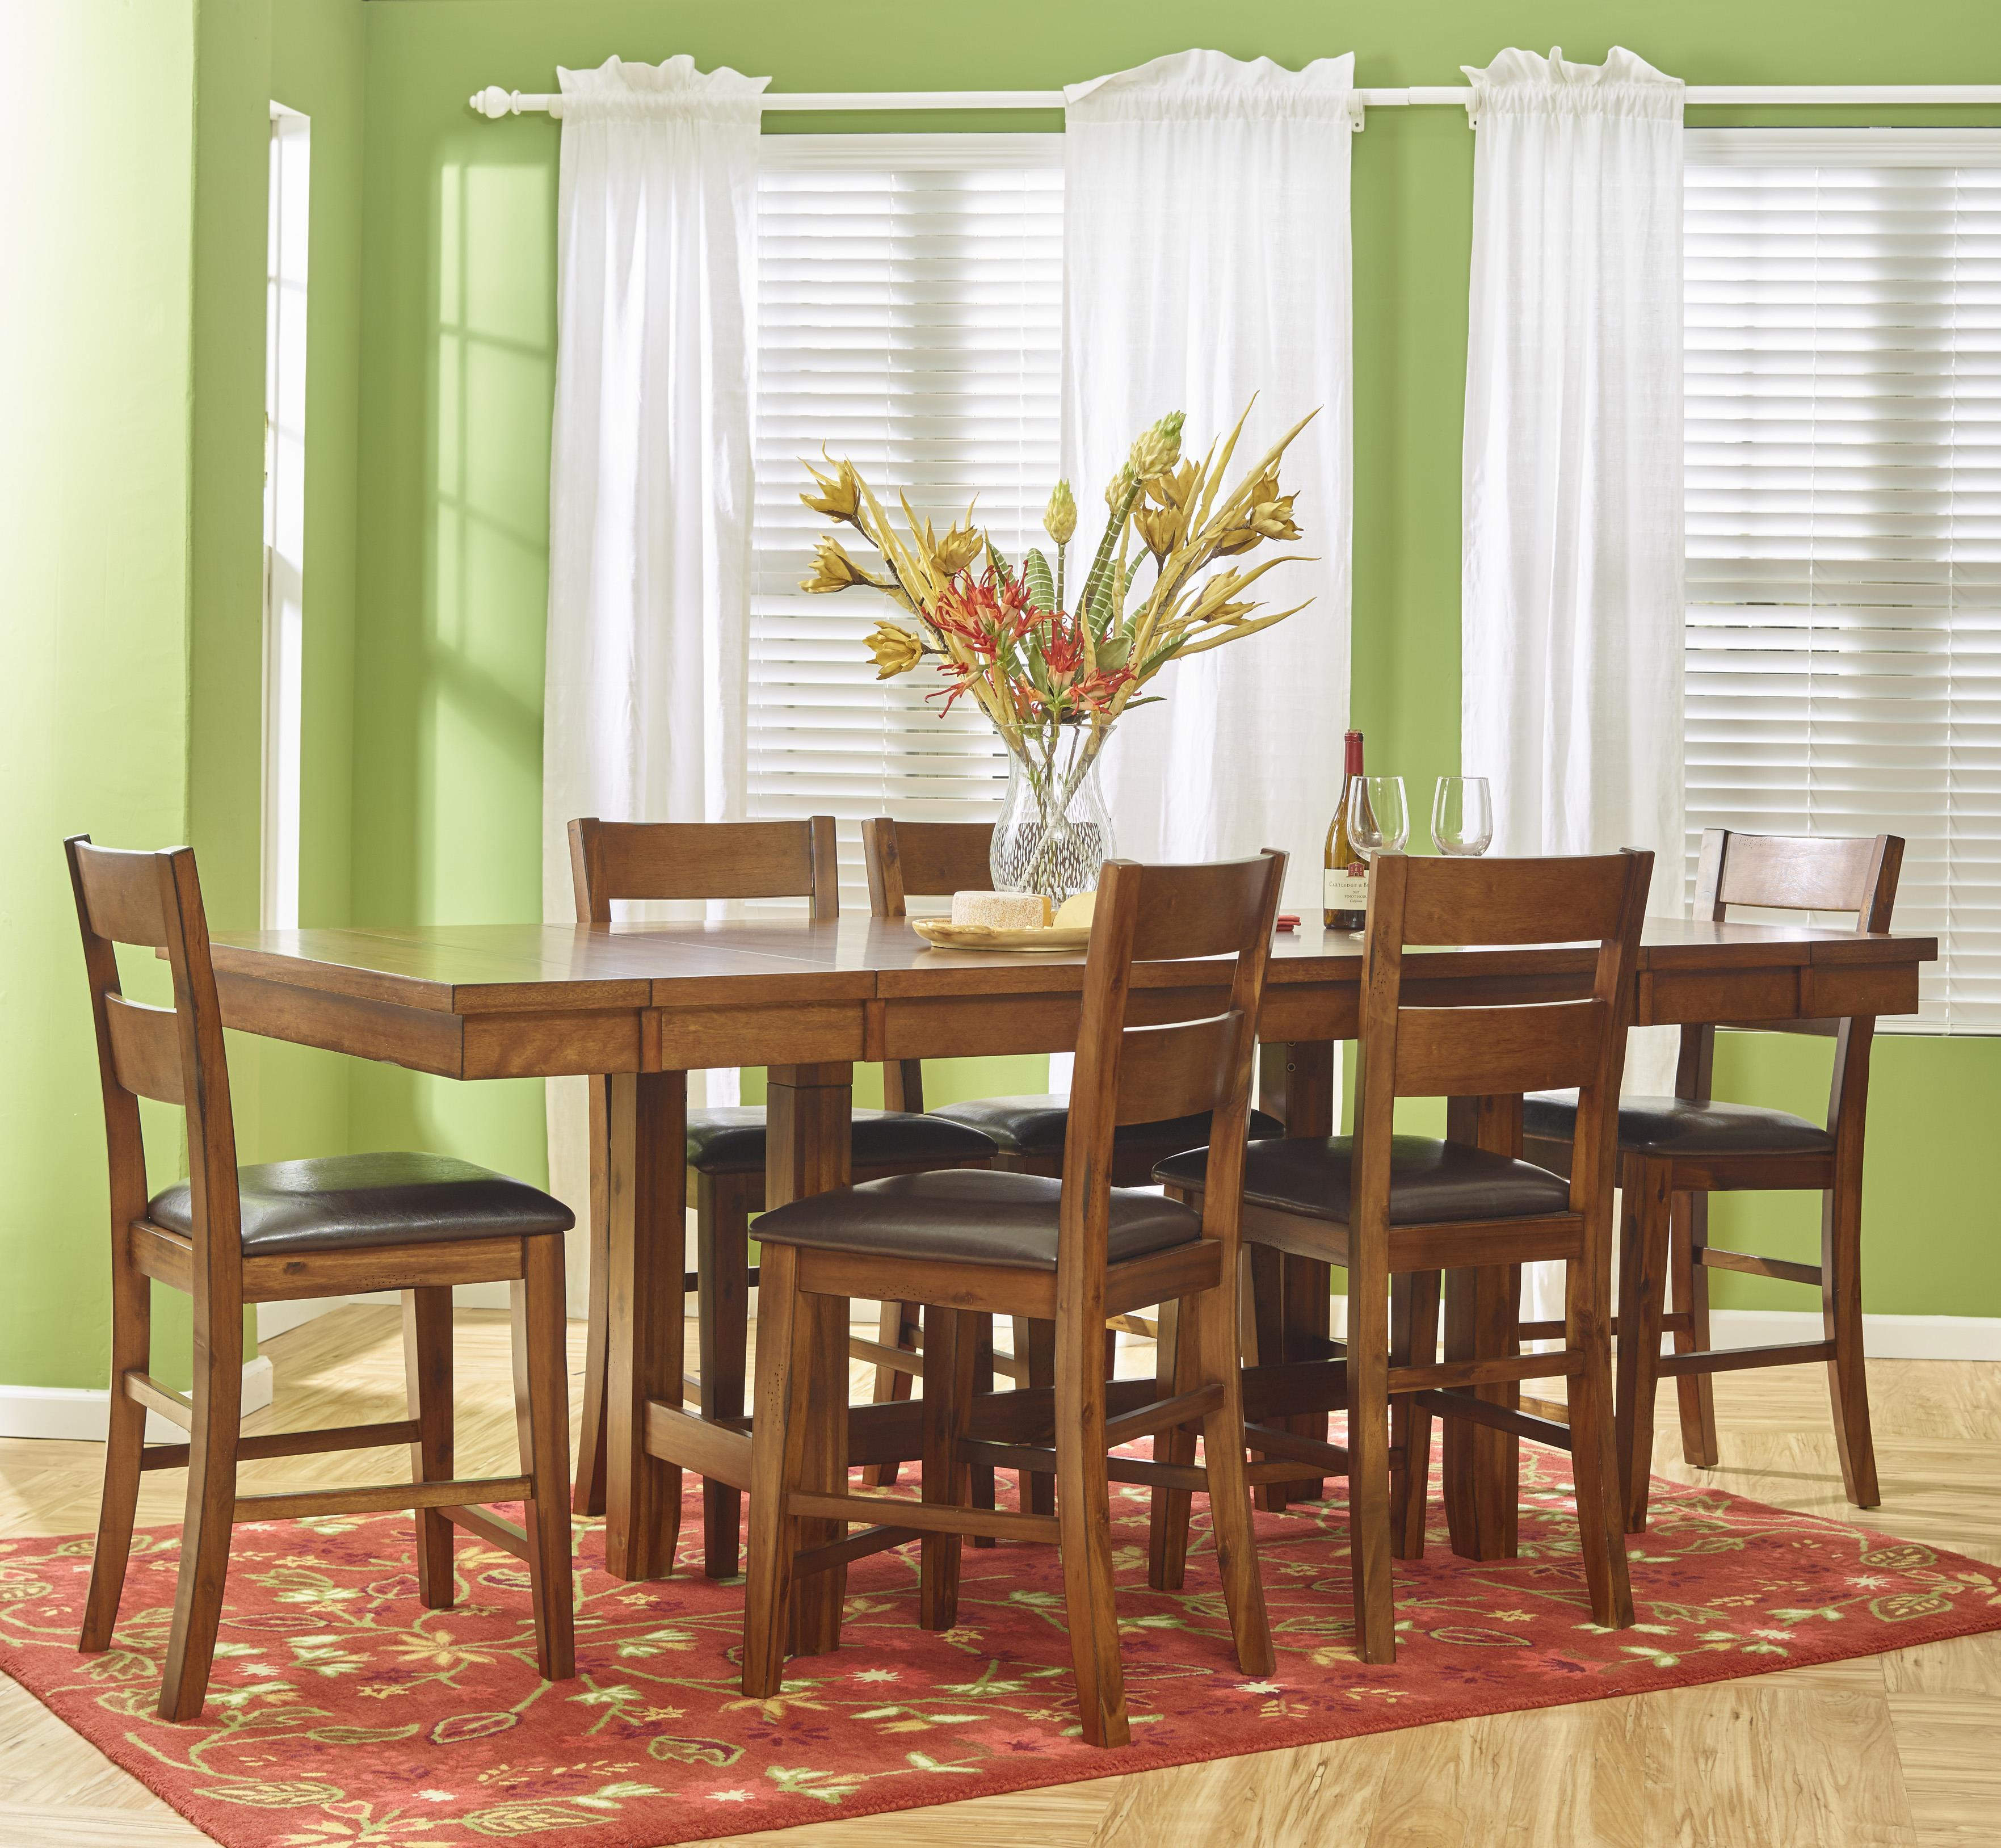 Jofran Plantation 5 Pack  Table With 4 Chairs   Godby Home Furnishings    Dining 5 Piece Set Noblesville, Carmel, Avon, Indianapolis, Indiana